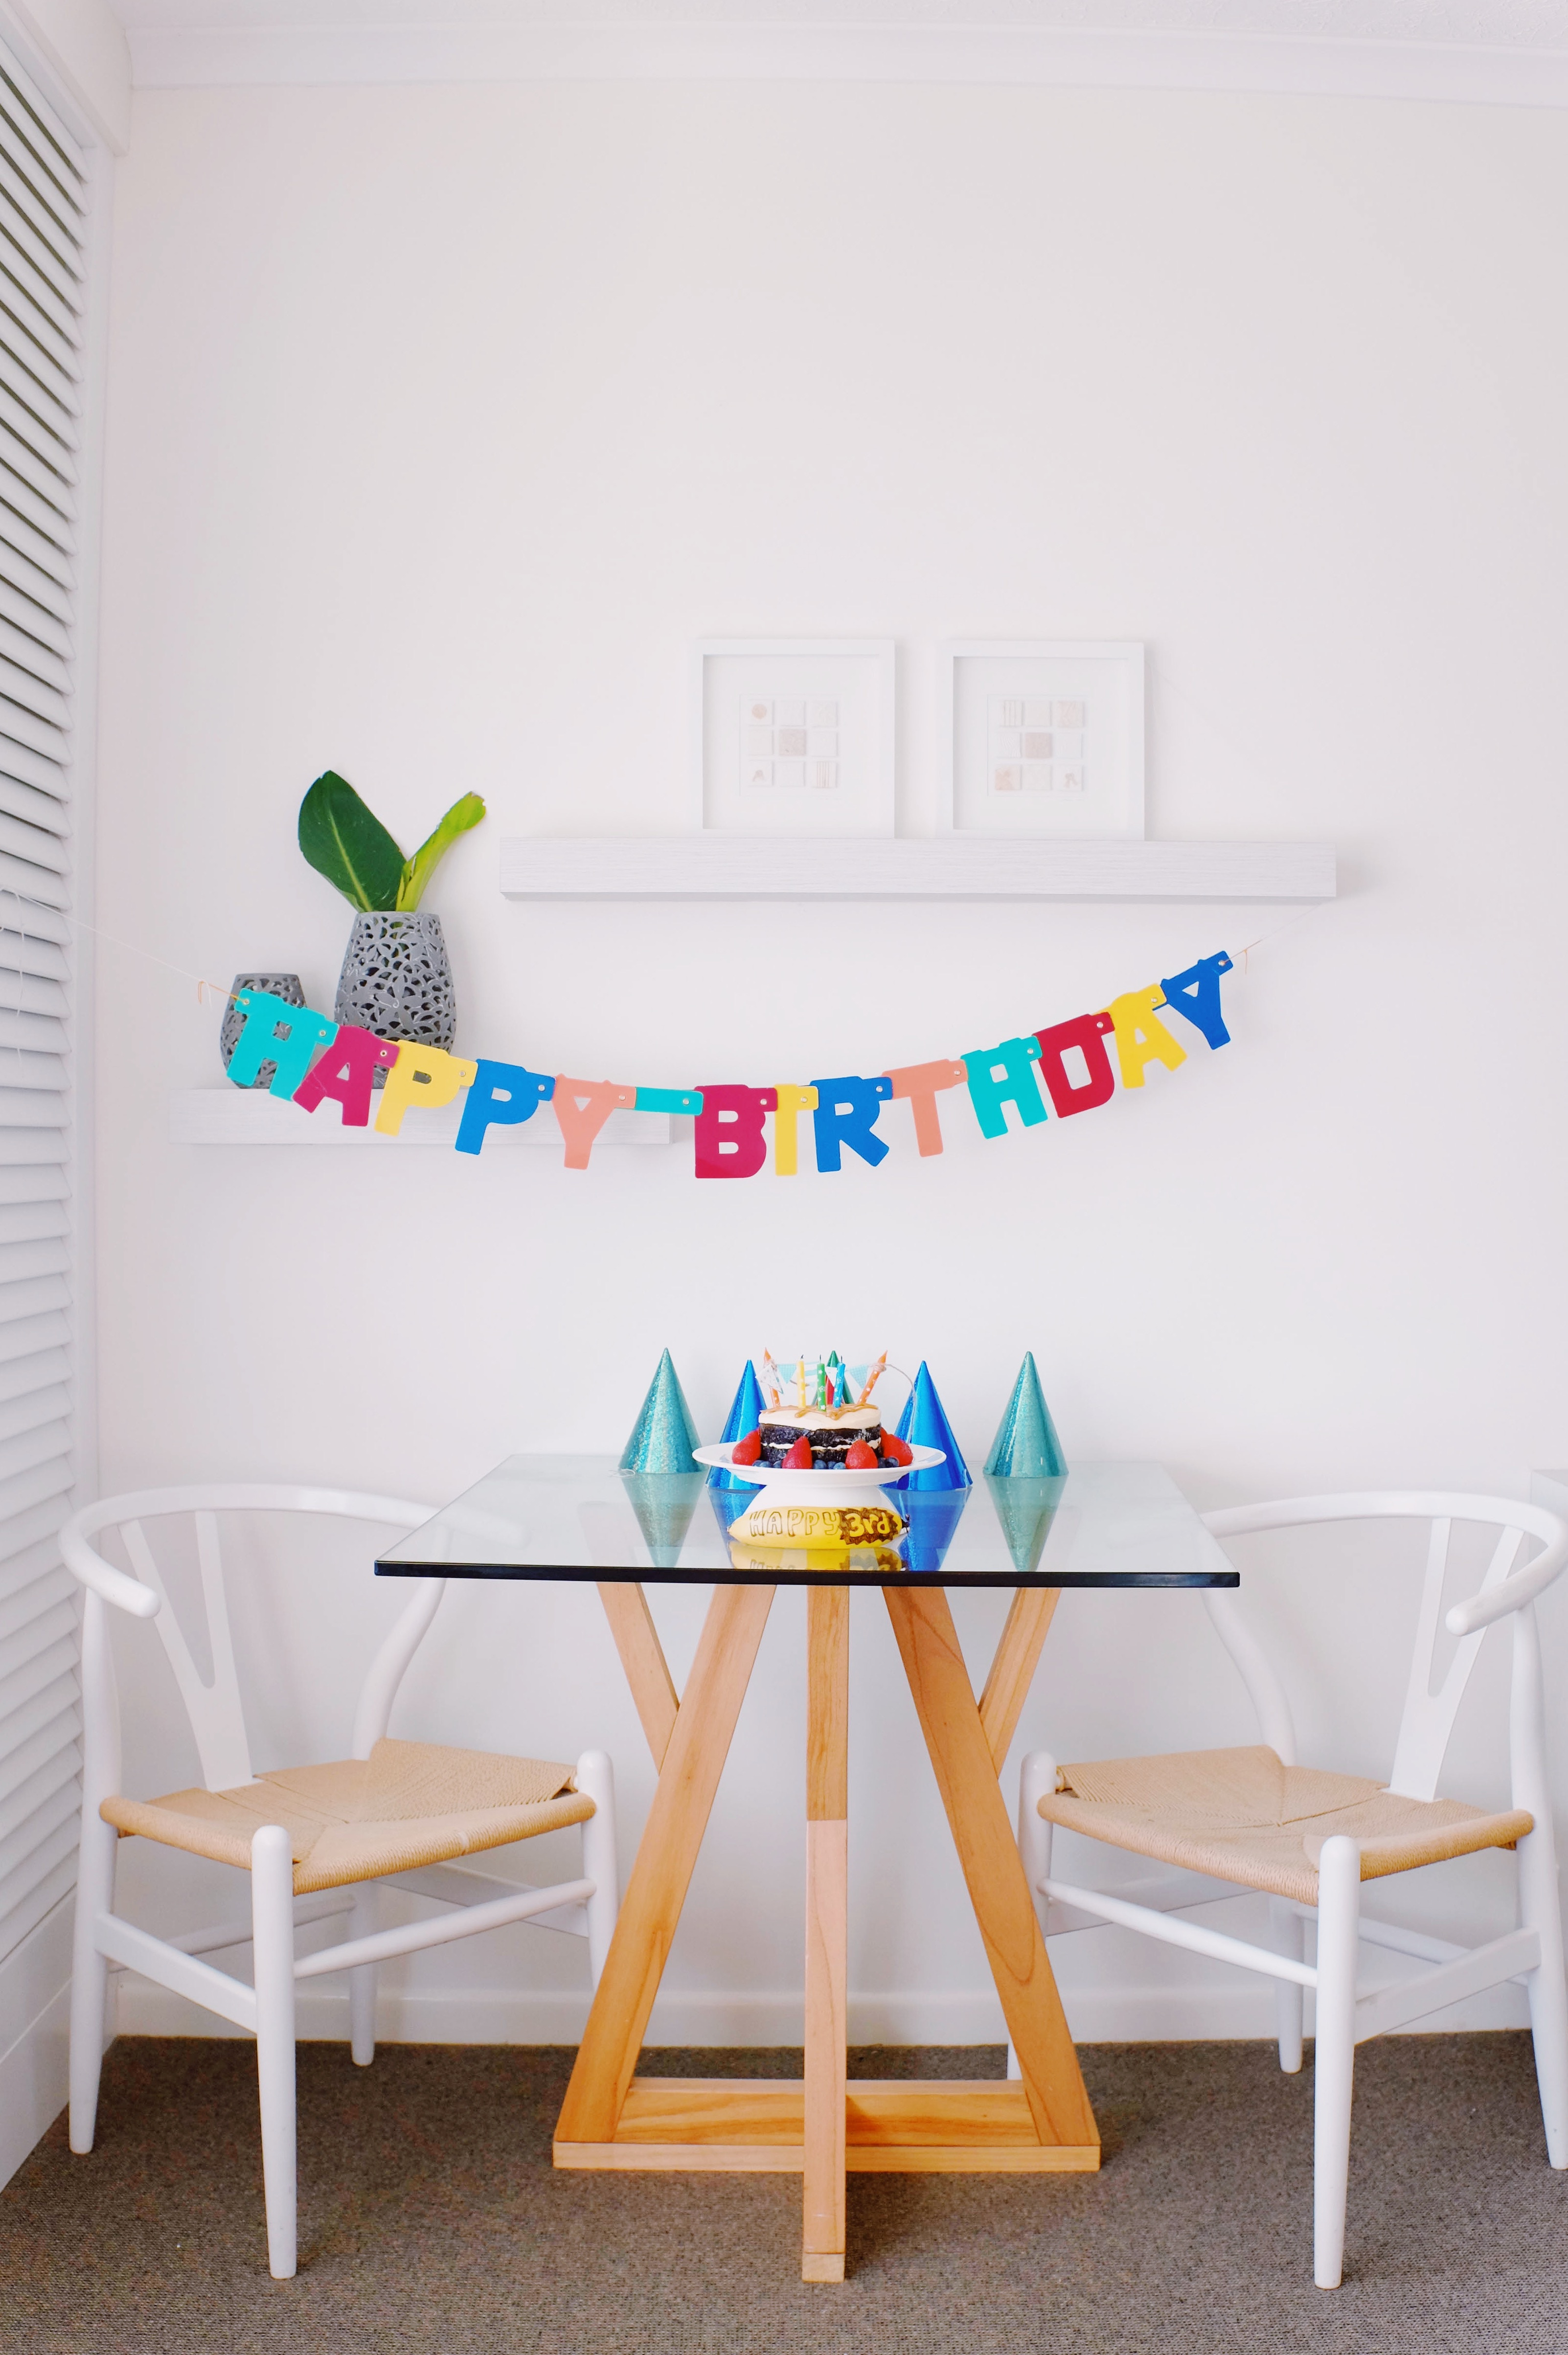 happy birthday banner on the wall